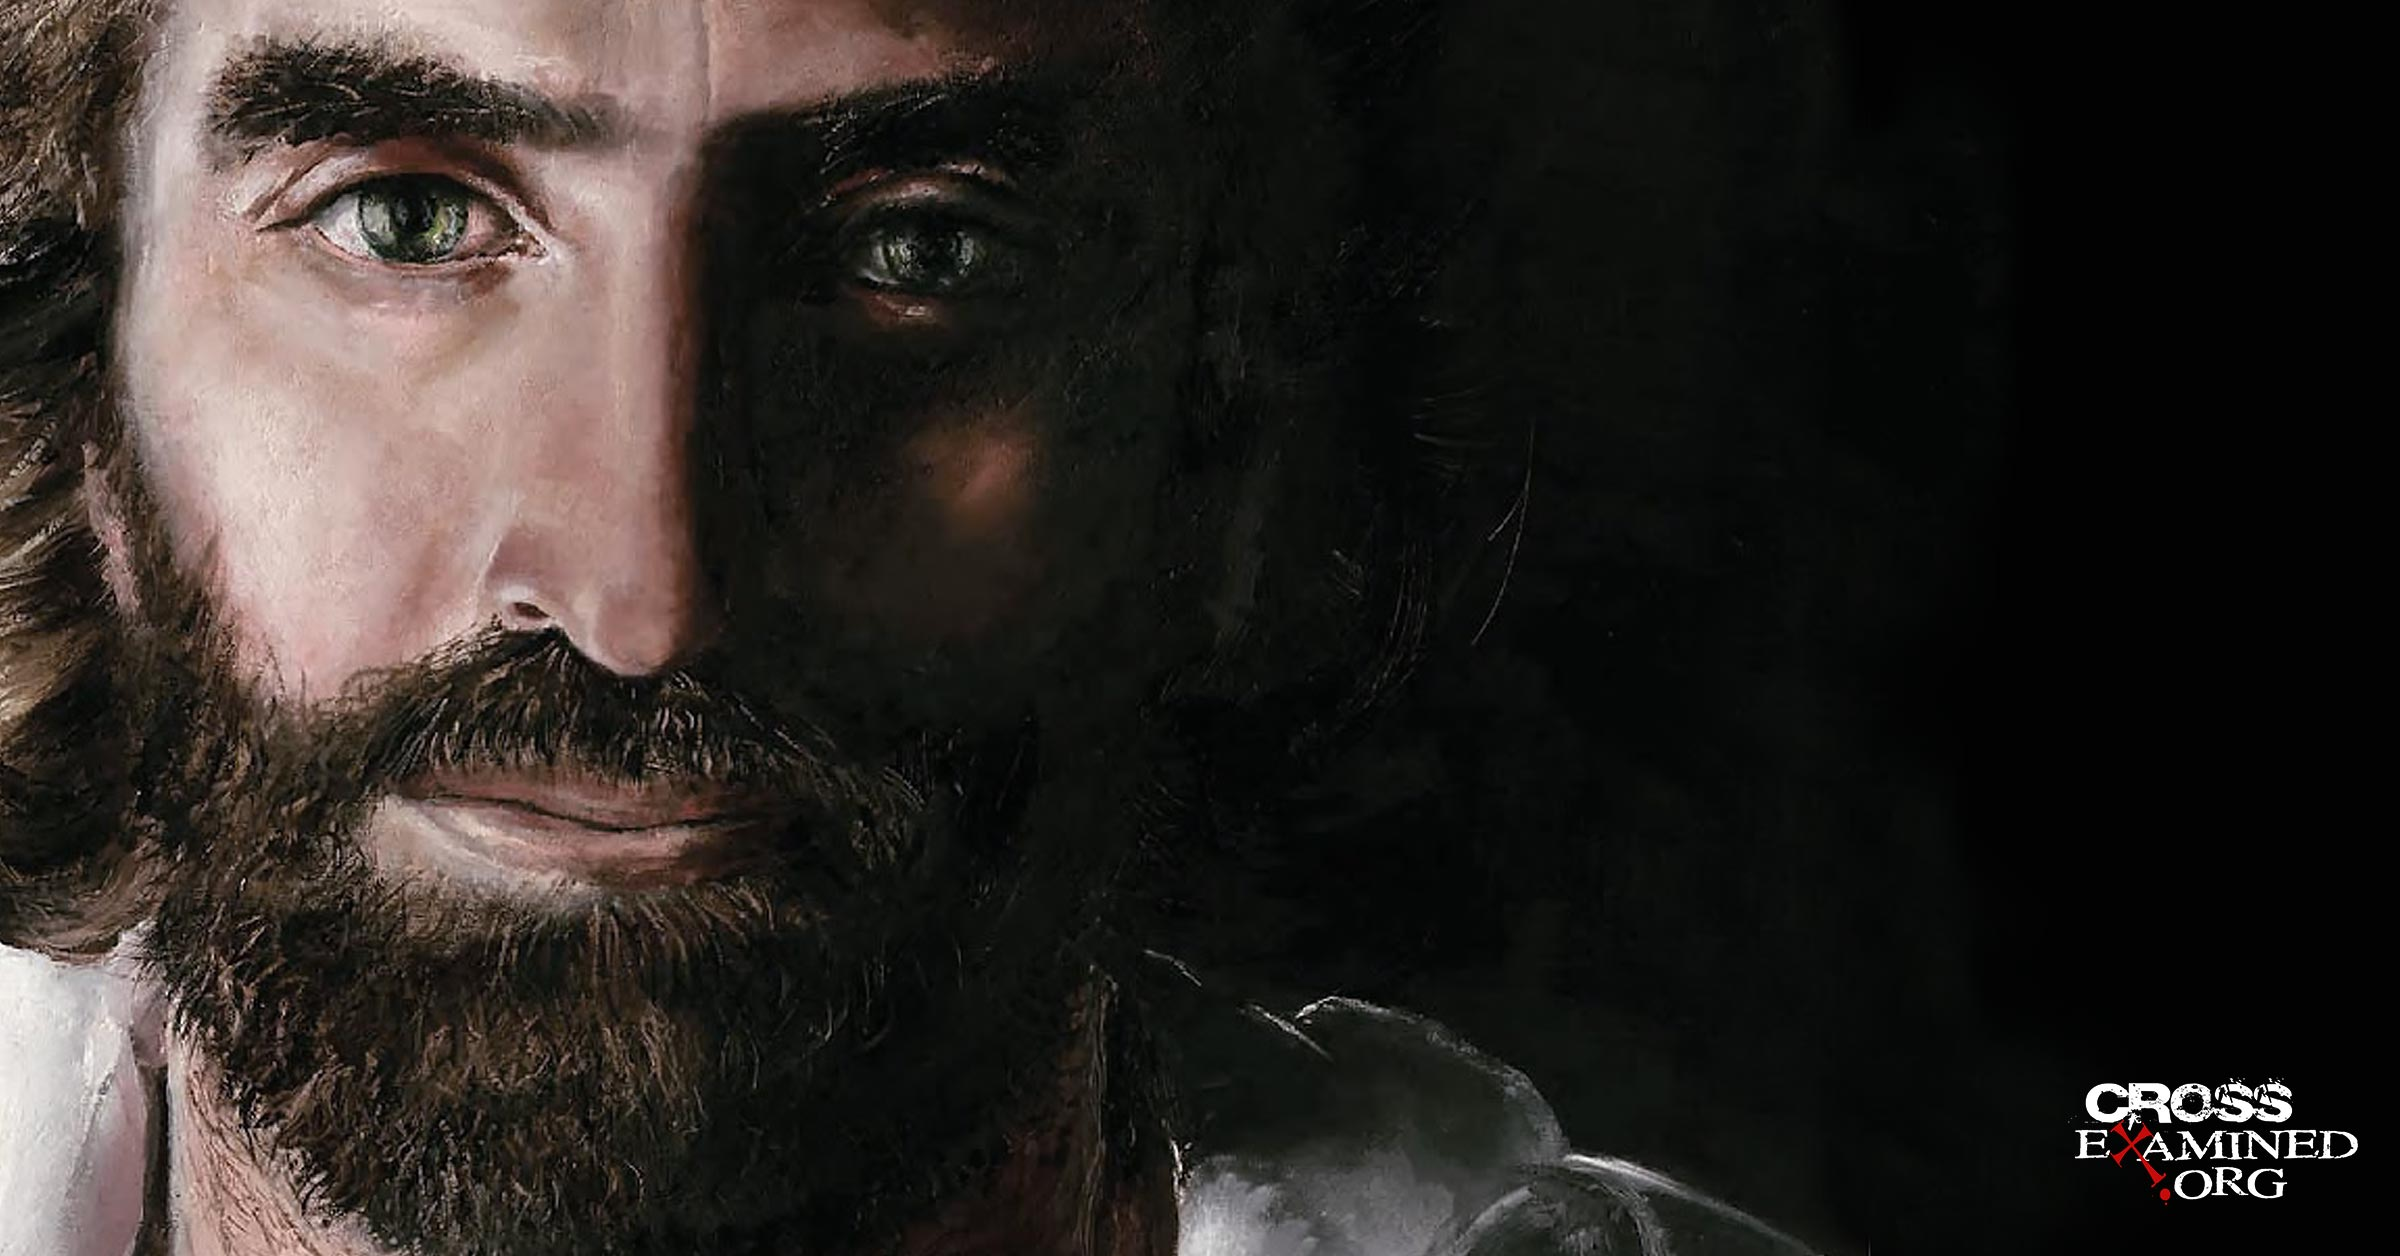 What Claims Did Jesus Make Regarding Himself?